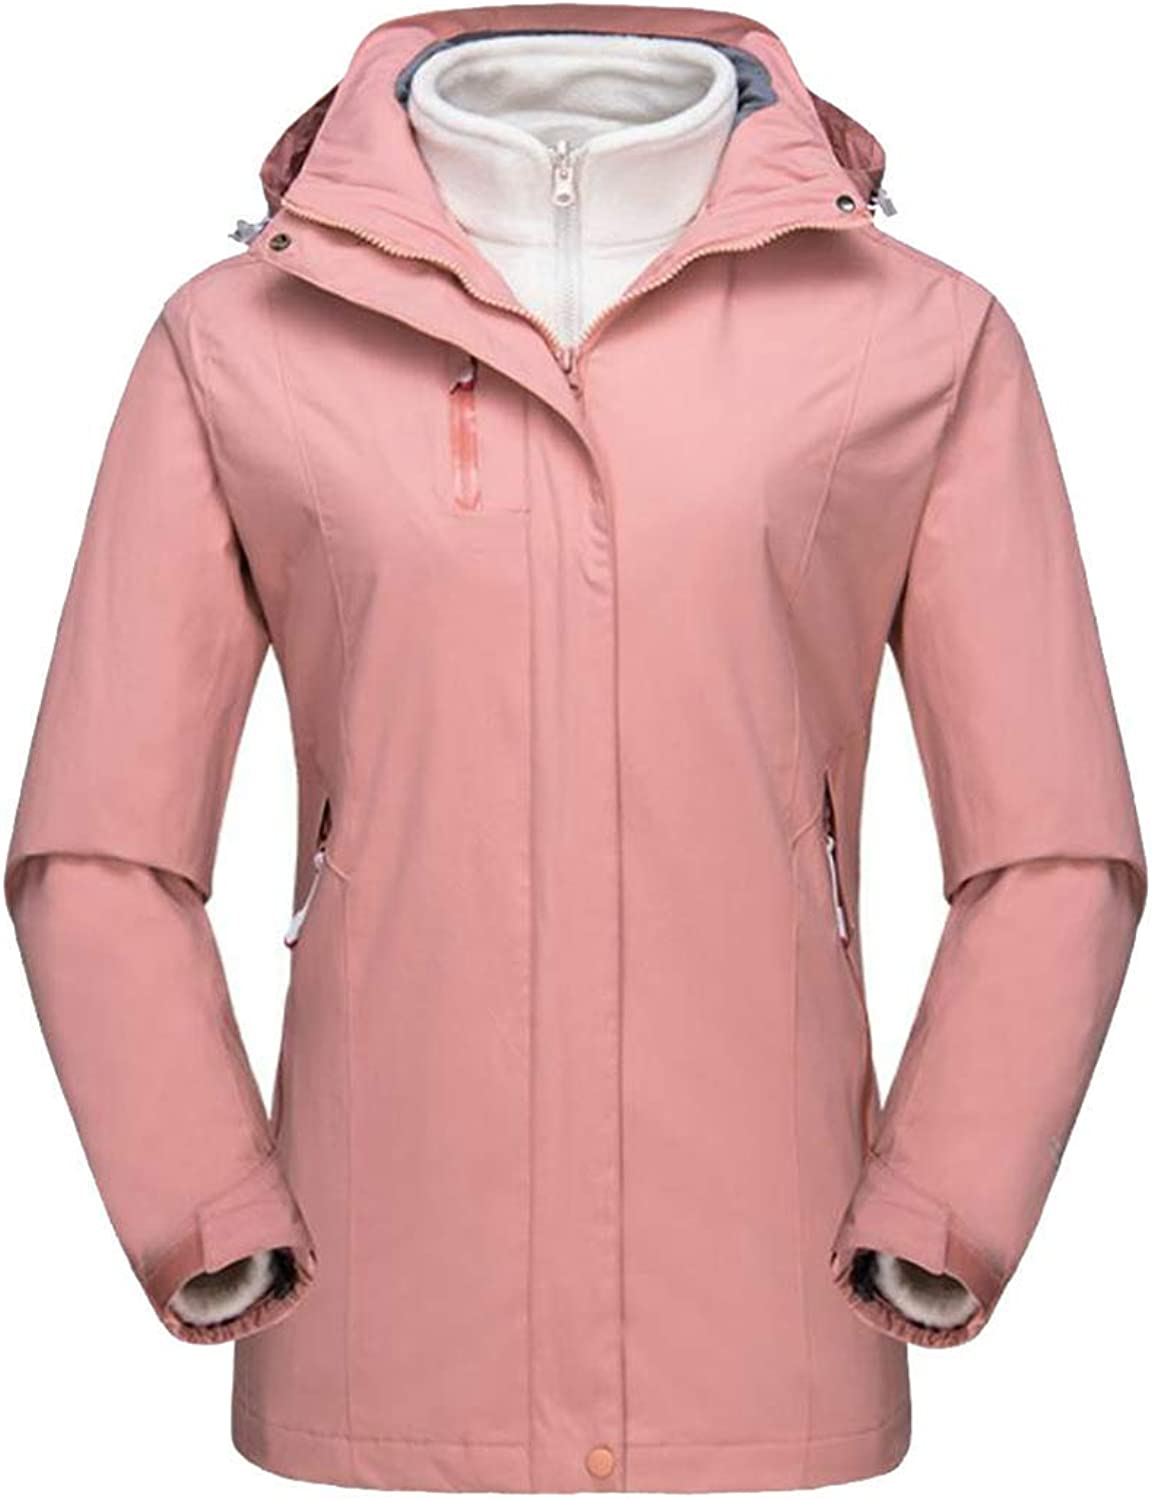 Joe Wenko Women's Hiking Outdoor Winter Fleece Hoodie Warm Rain Parka 3in1 Ski Coat